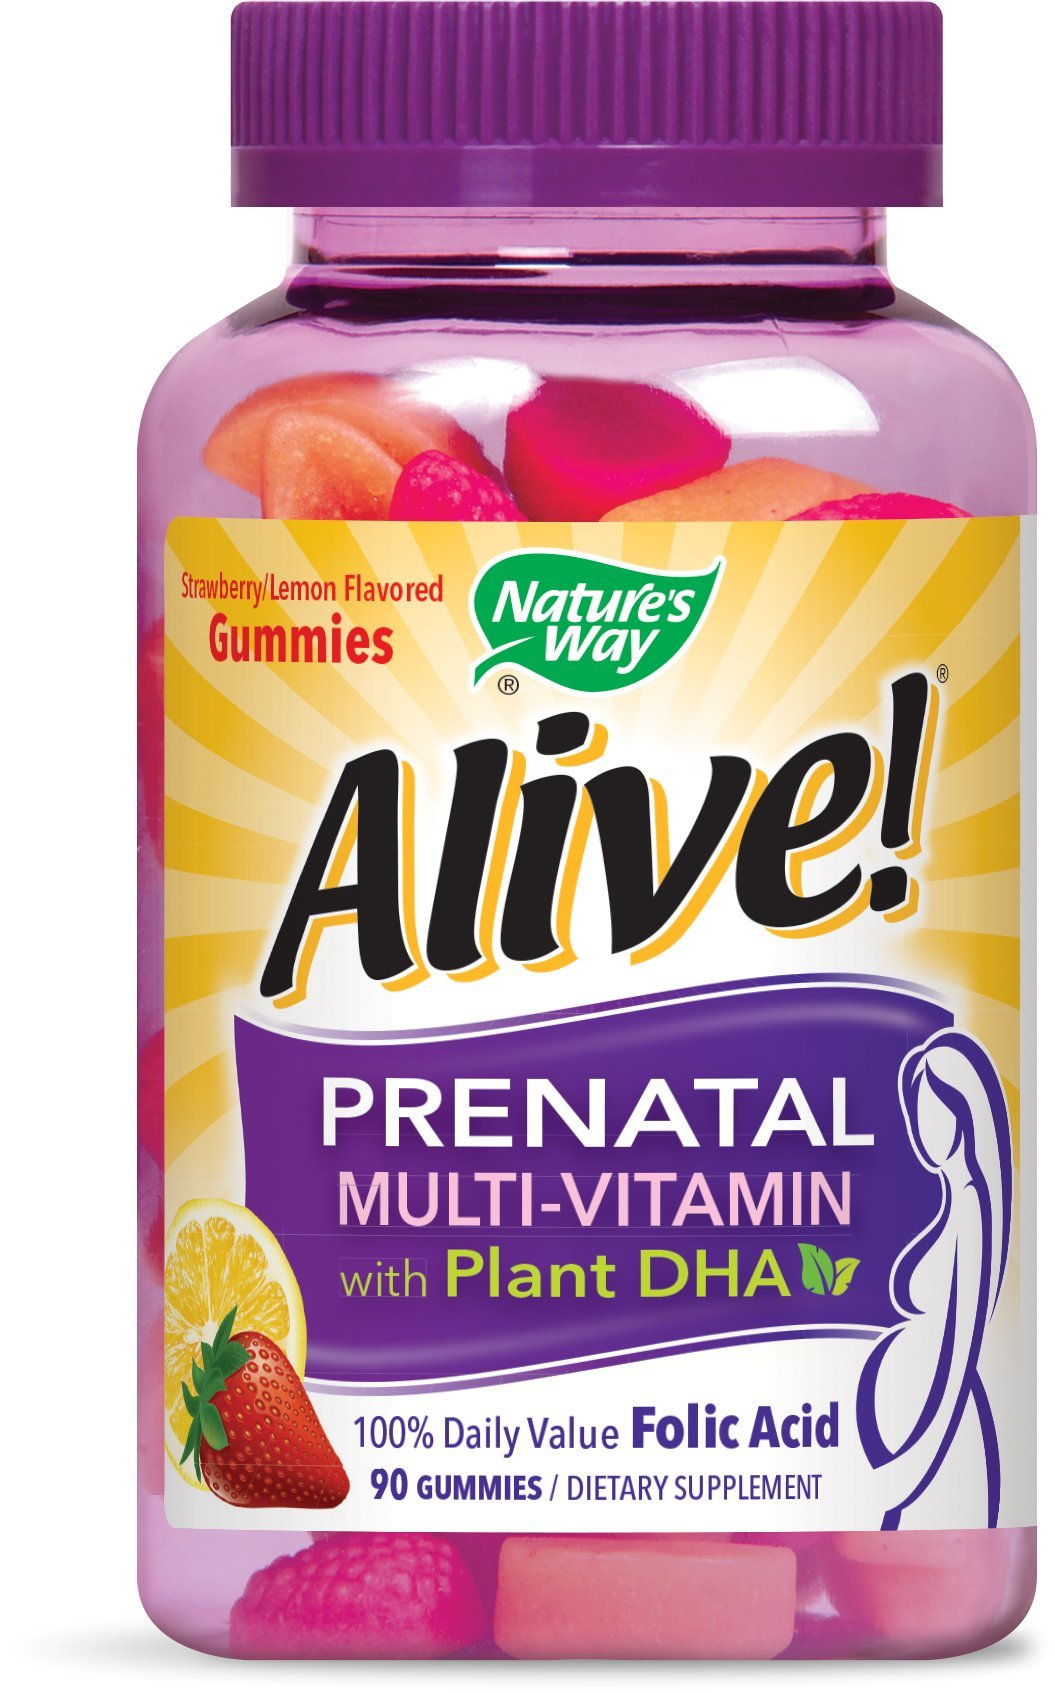 Nature's Way Alive!® Prenatal Gummy Multivitamin with DHA, Fruit and Veggie Blend (50mg per serving), Full B Vitamin Complex, Gluten Free, Made with Pectin, 90 Gummies by Nature's Way